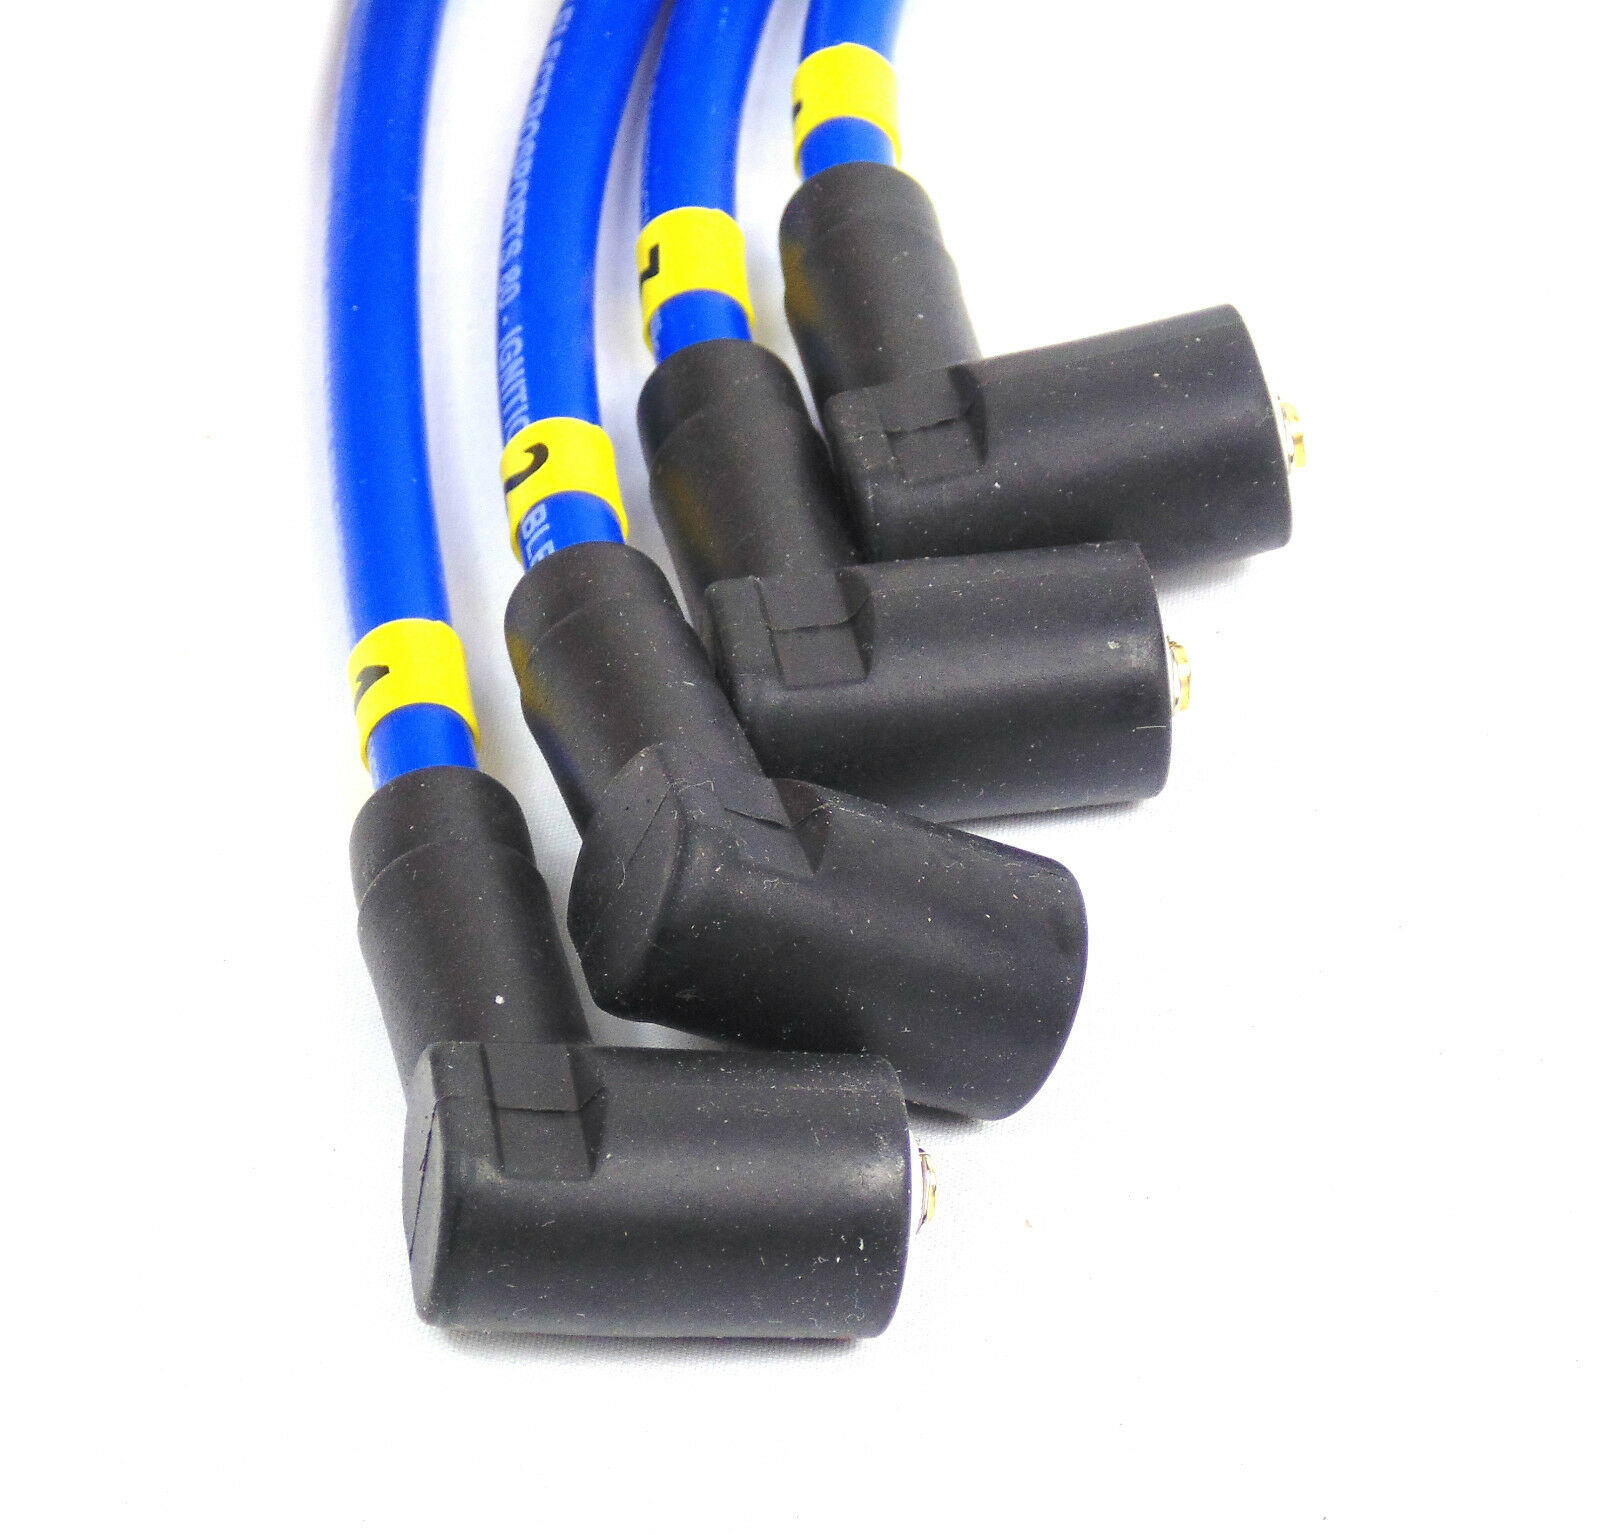 Magnecor 8mm Ignition HT Leads Wires Cable Renault Clio Sport 182 ...